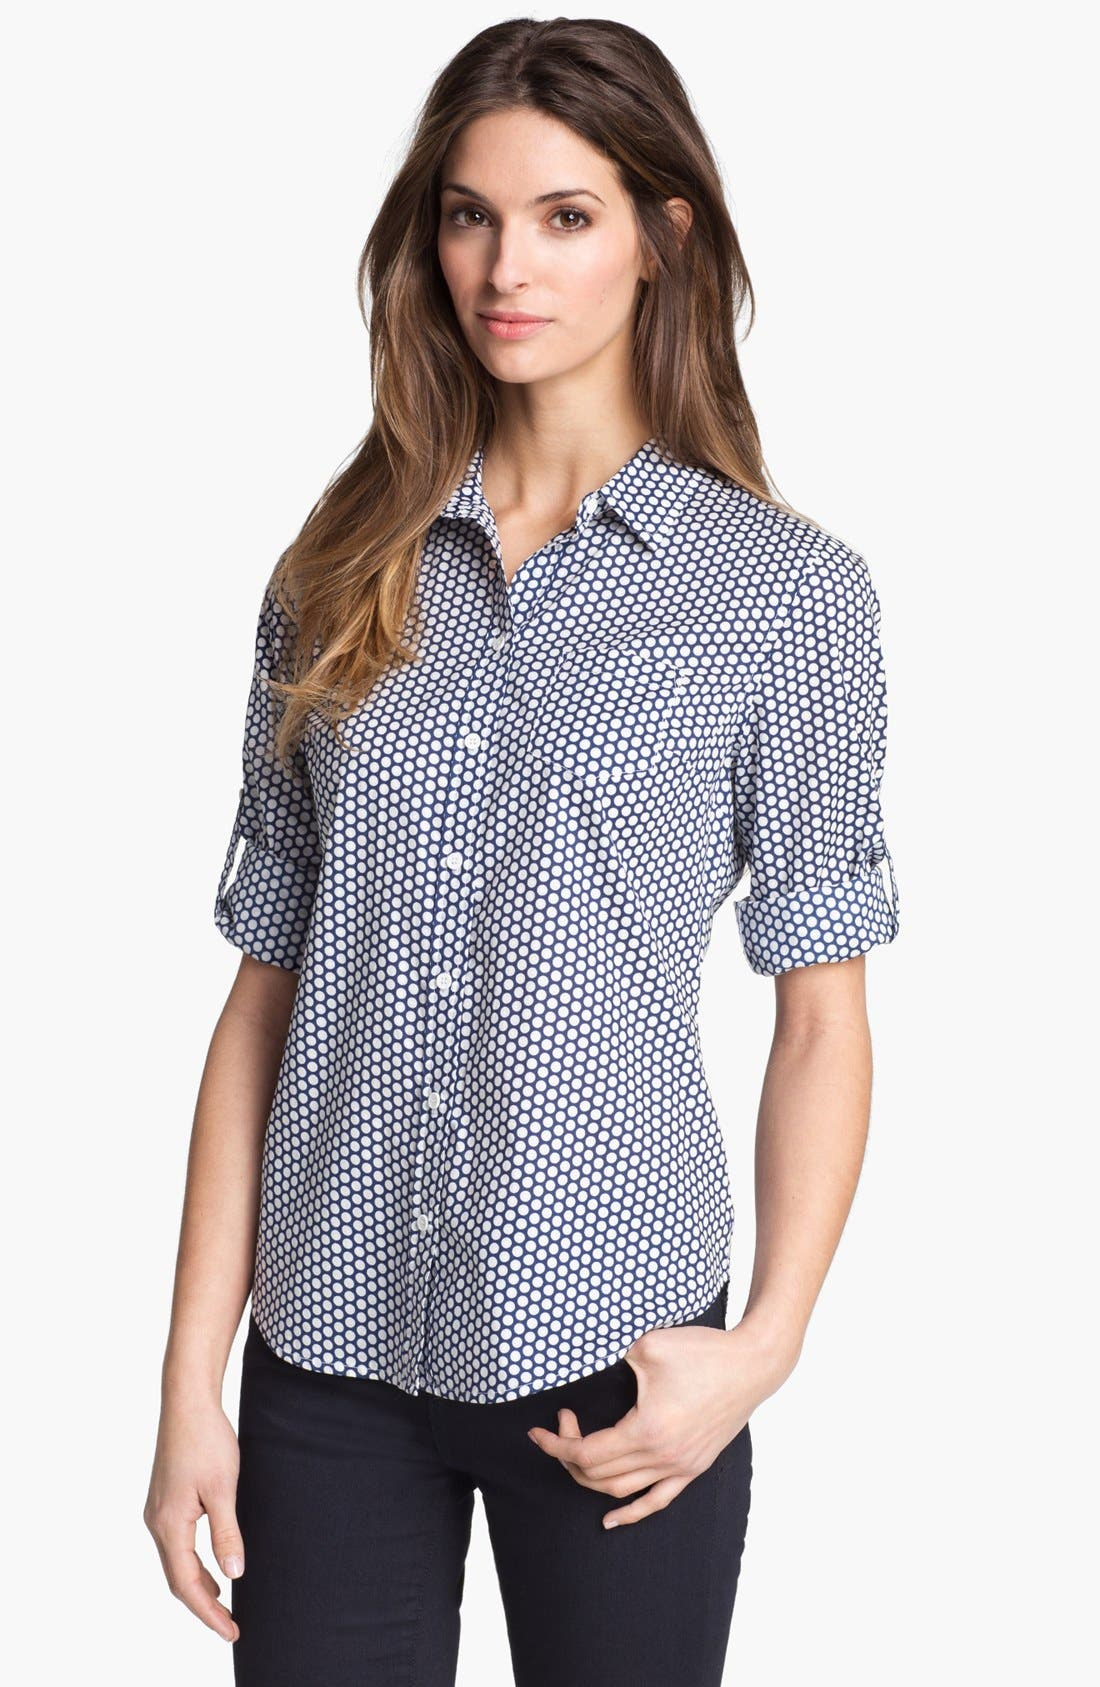 Main Image - Sandra Ingrish Roll Sleeve Polka Dot Shirt (Petite)